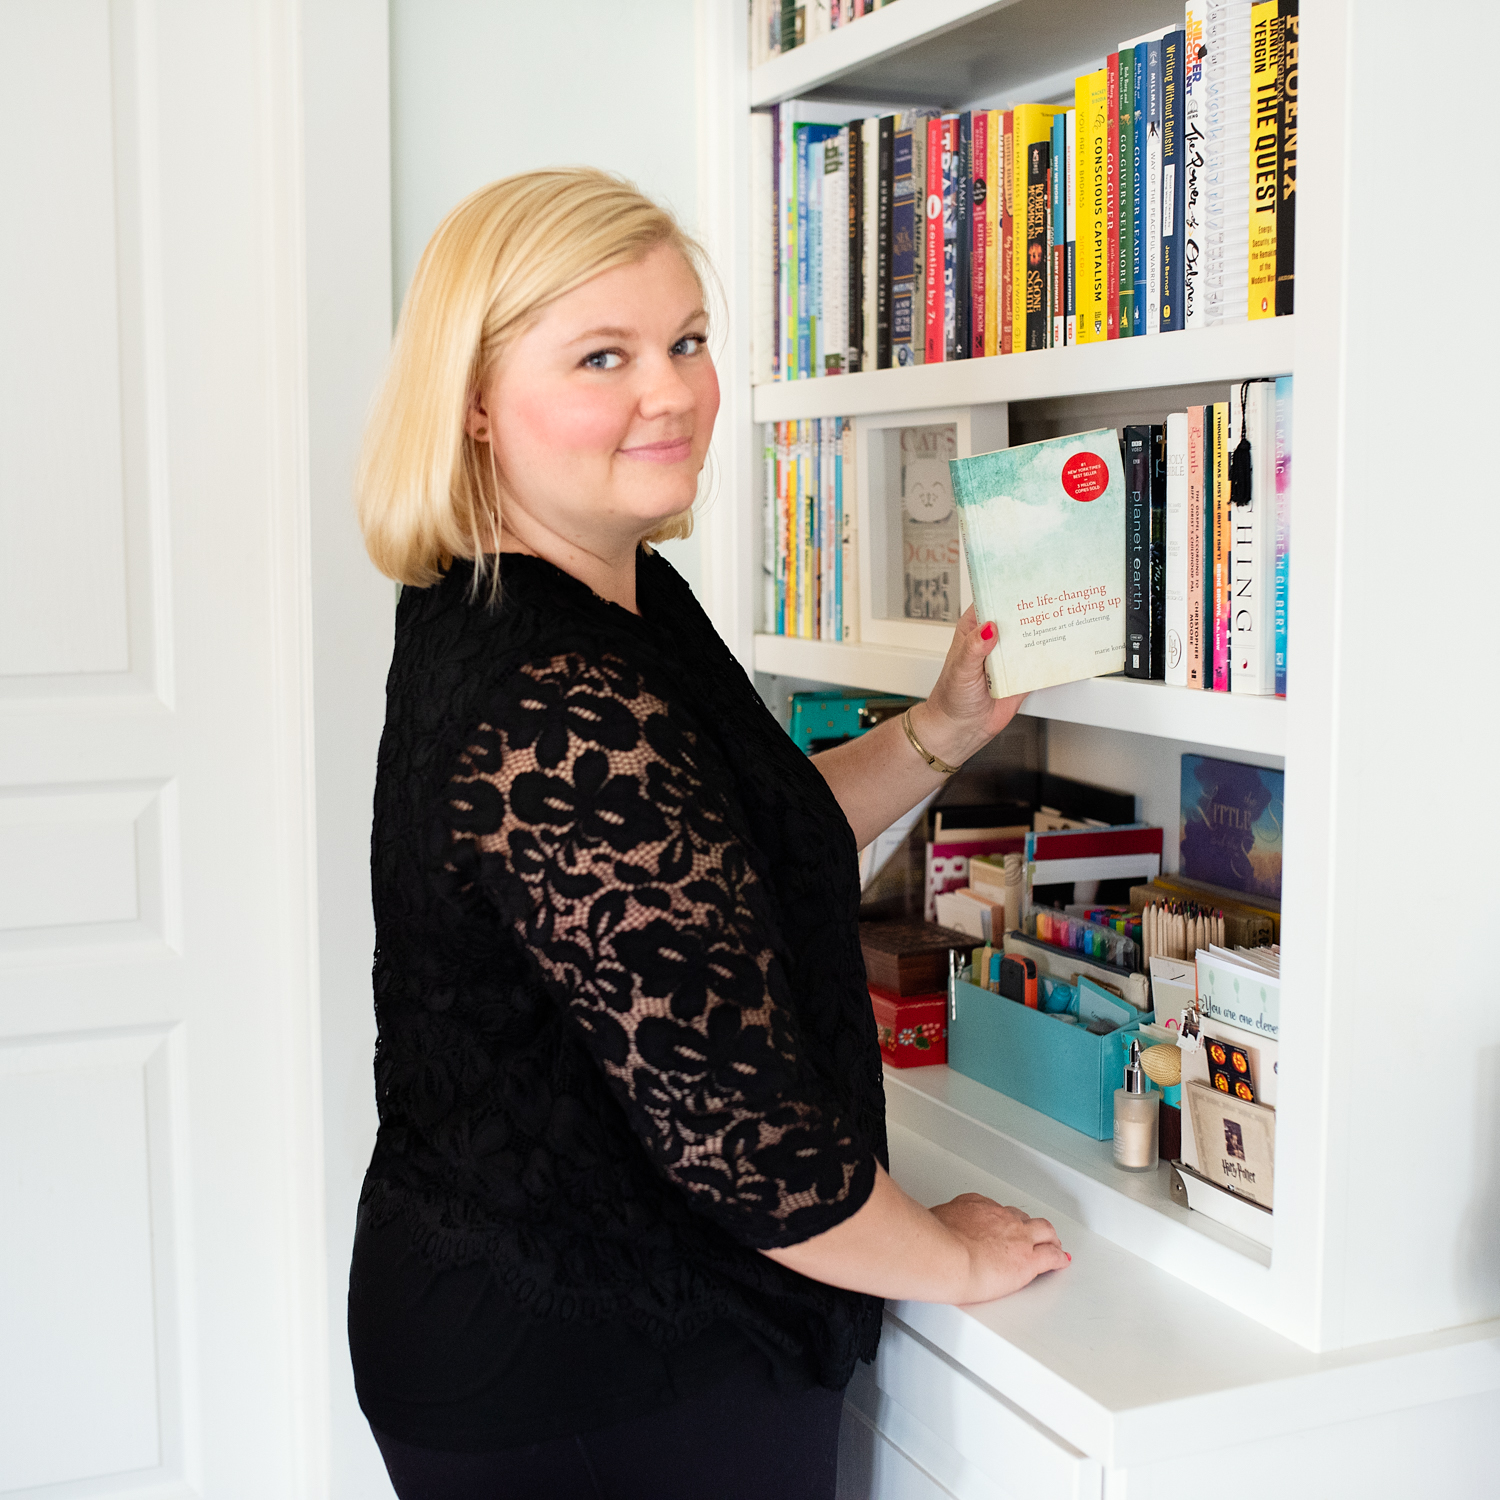 A well-organized bookshelf? Love it!